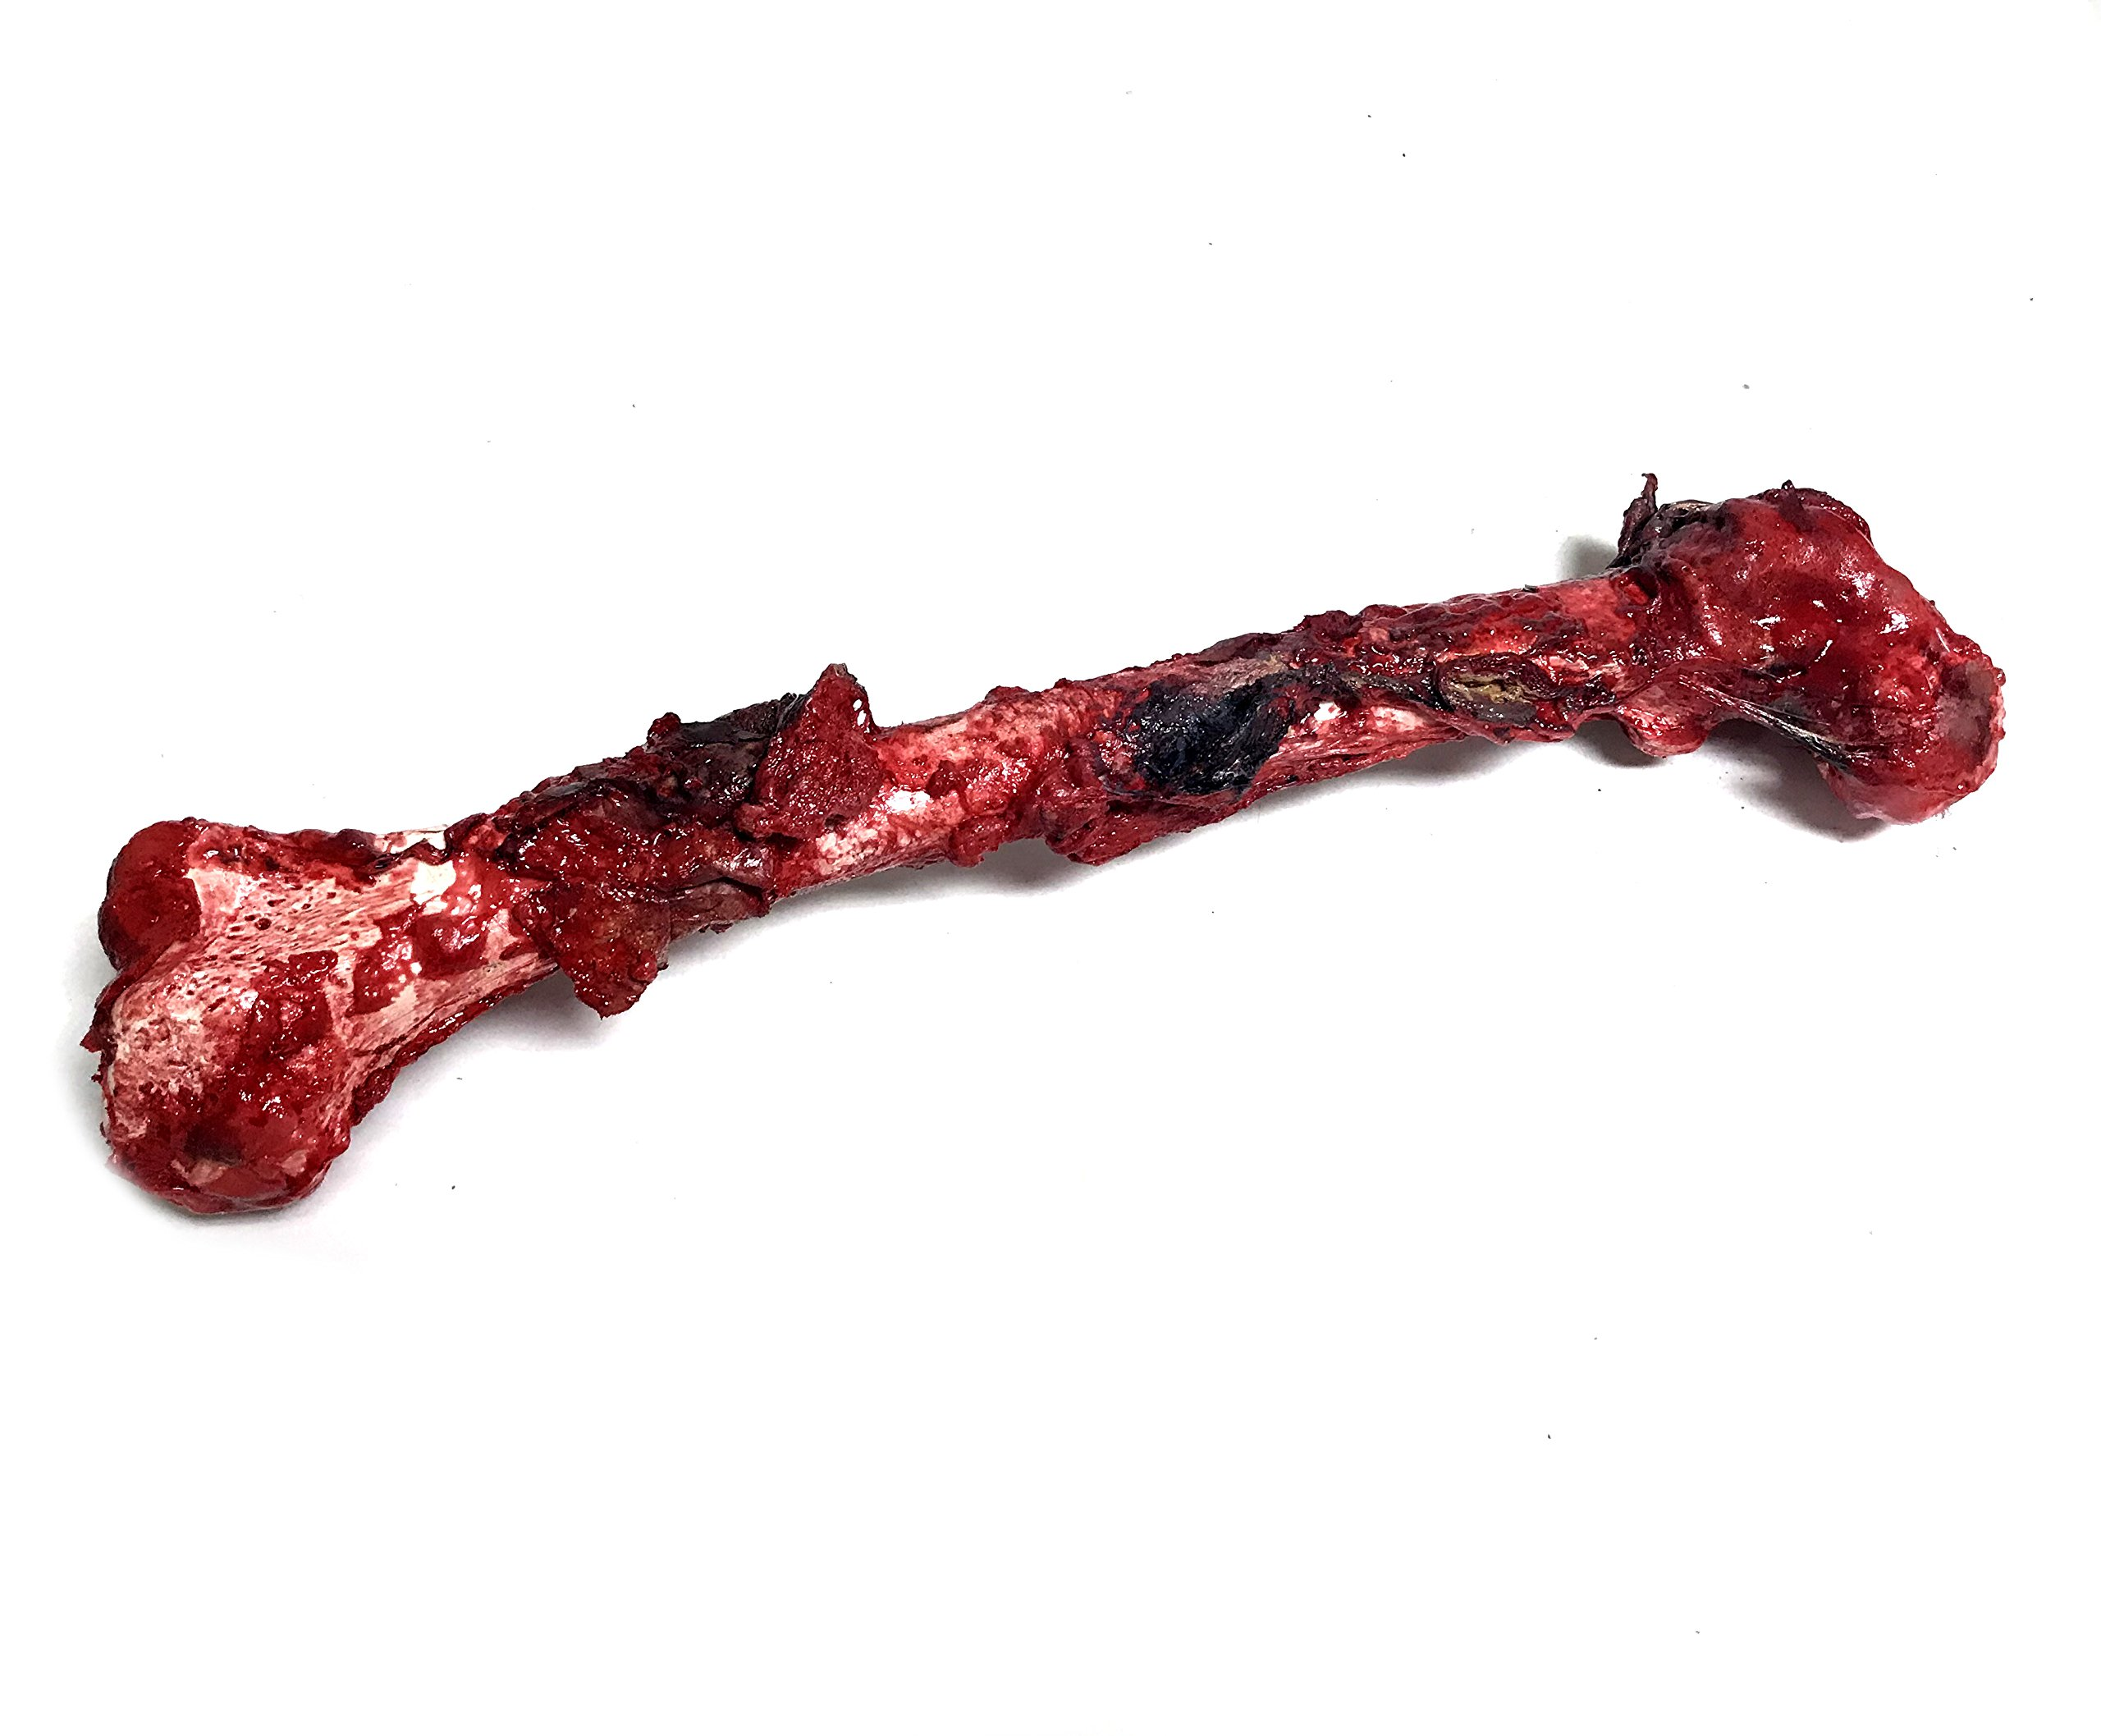 NewRuleFX Bloody, Grisly Femur Bone with Skin and Gore - Full Size FX Prop by NewRuleFX (Image #2)